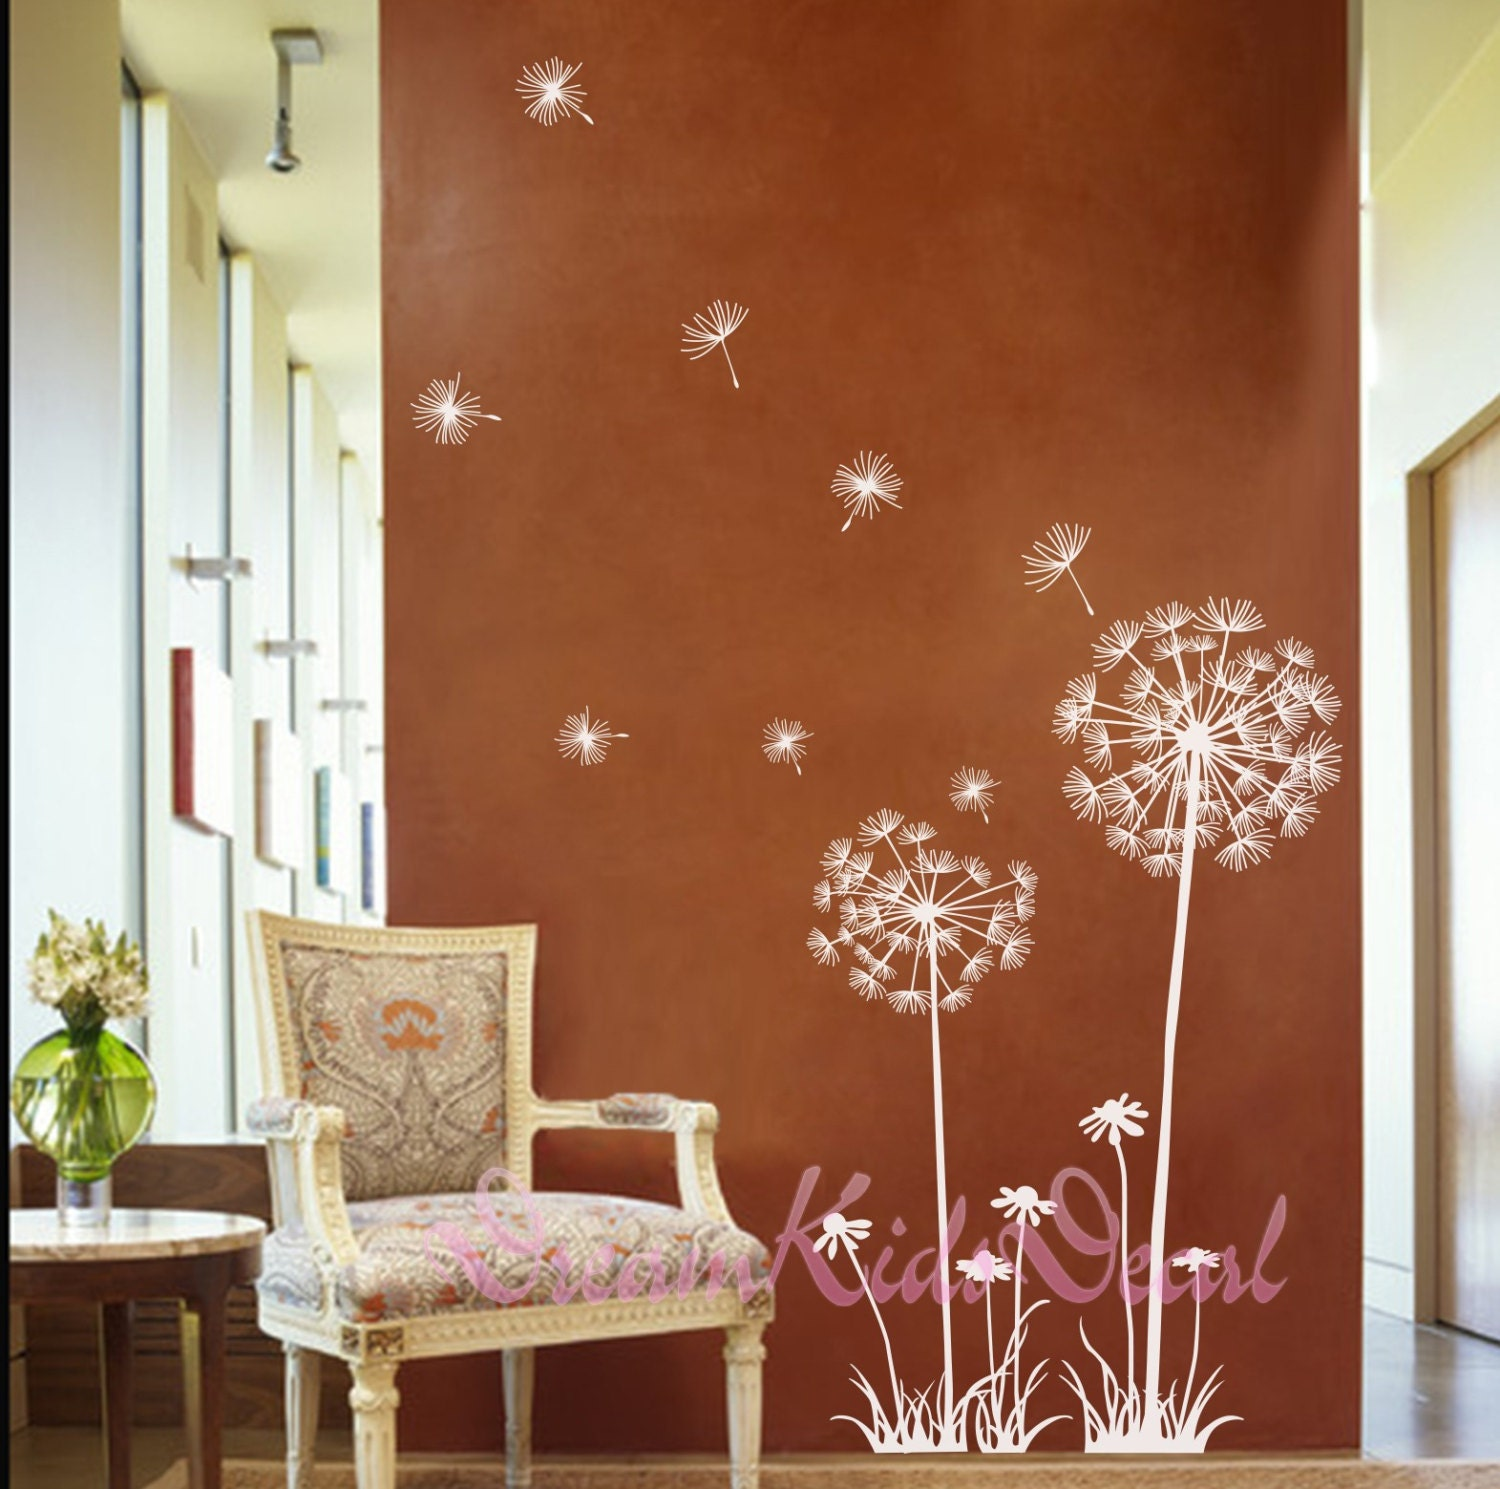 Dandelion wall decal flower wall decal floral wall sticker